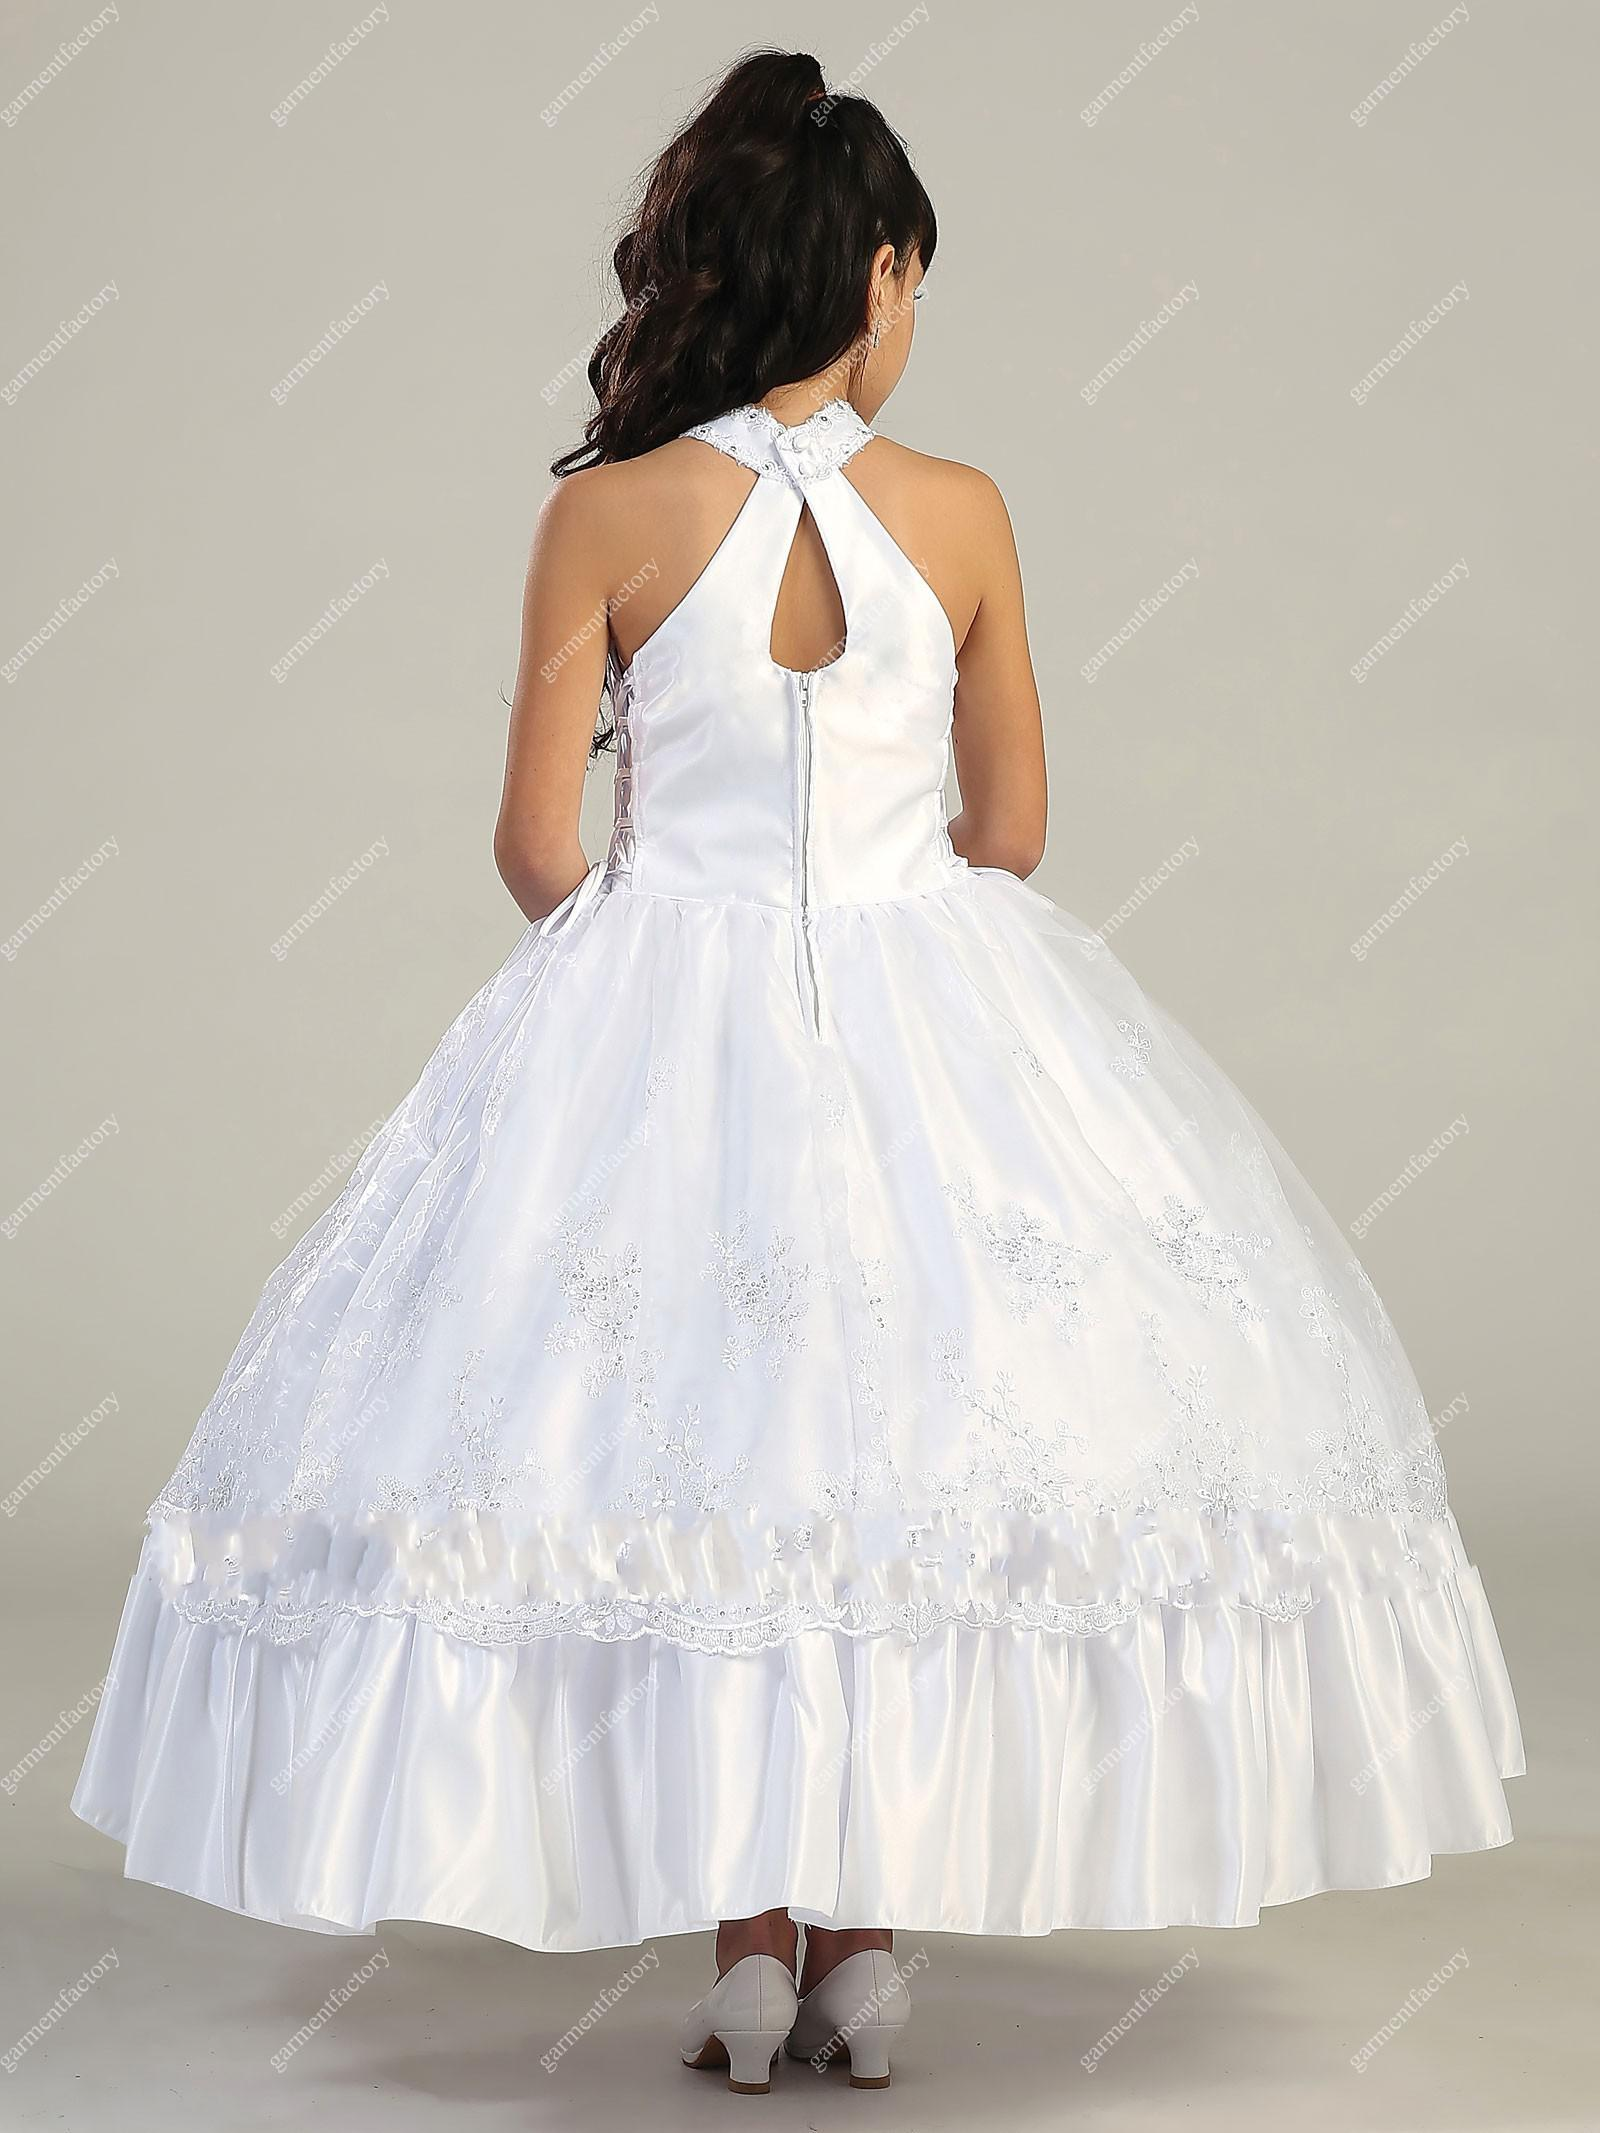 Beautiful white flower girls dresses special neckline tea length beautiful white flower girls dresses special neckline tea length little girls wedding party dresses ombrellifo Images